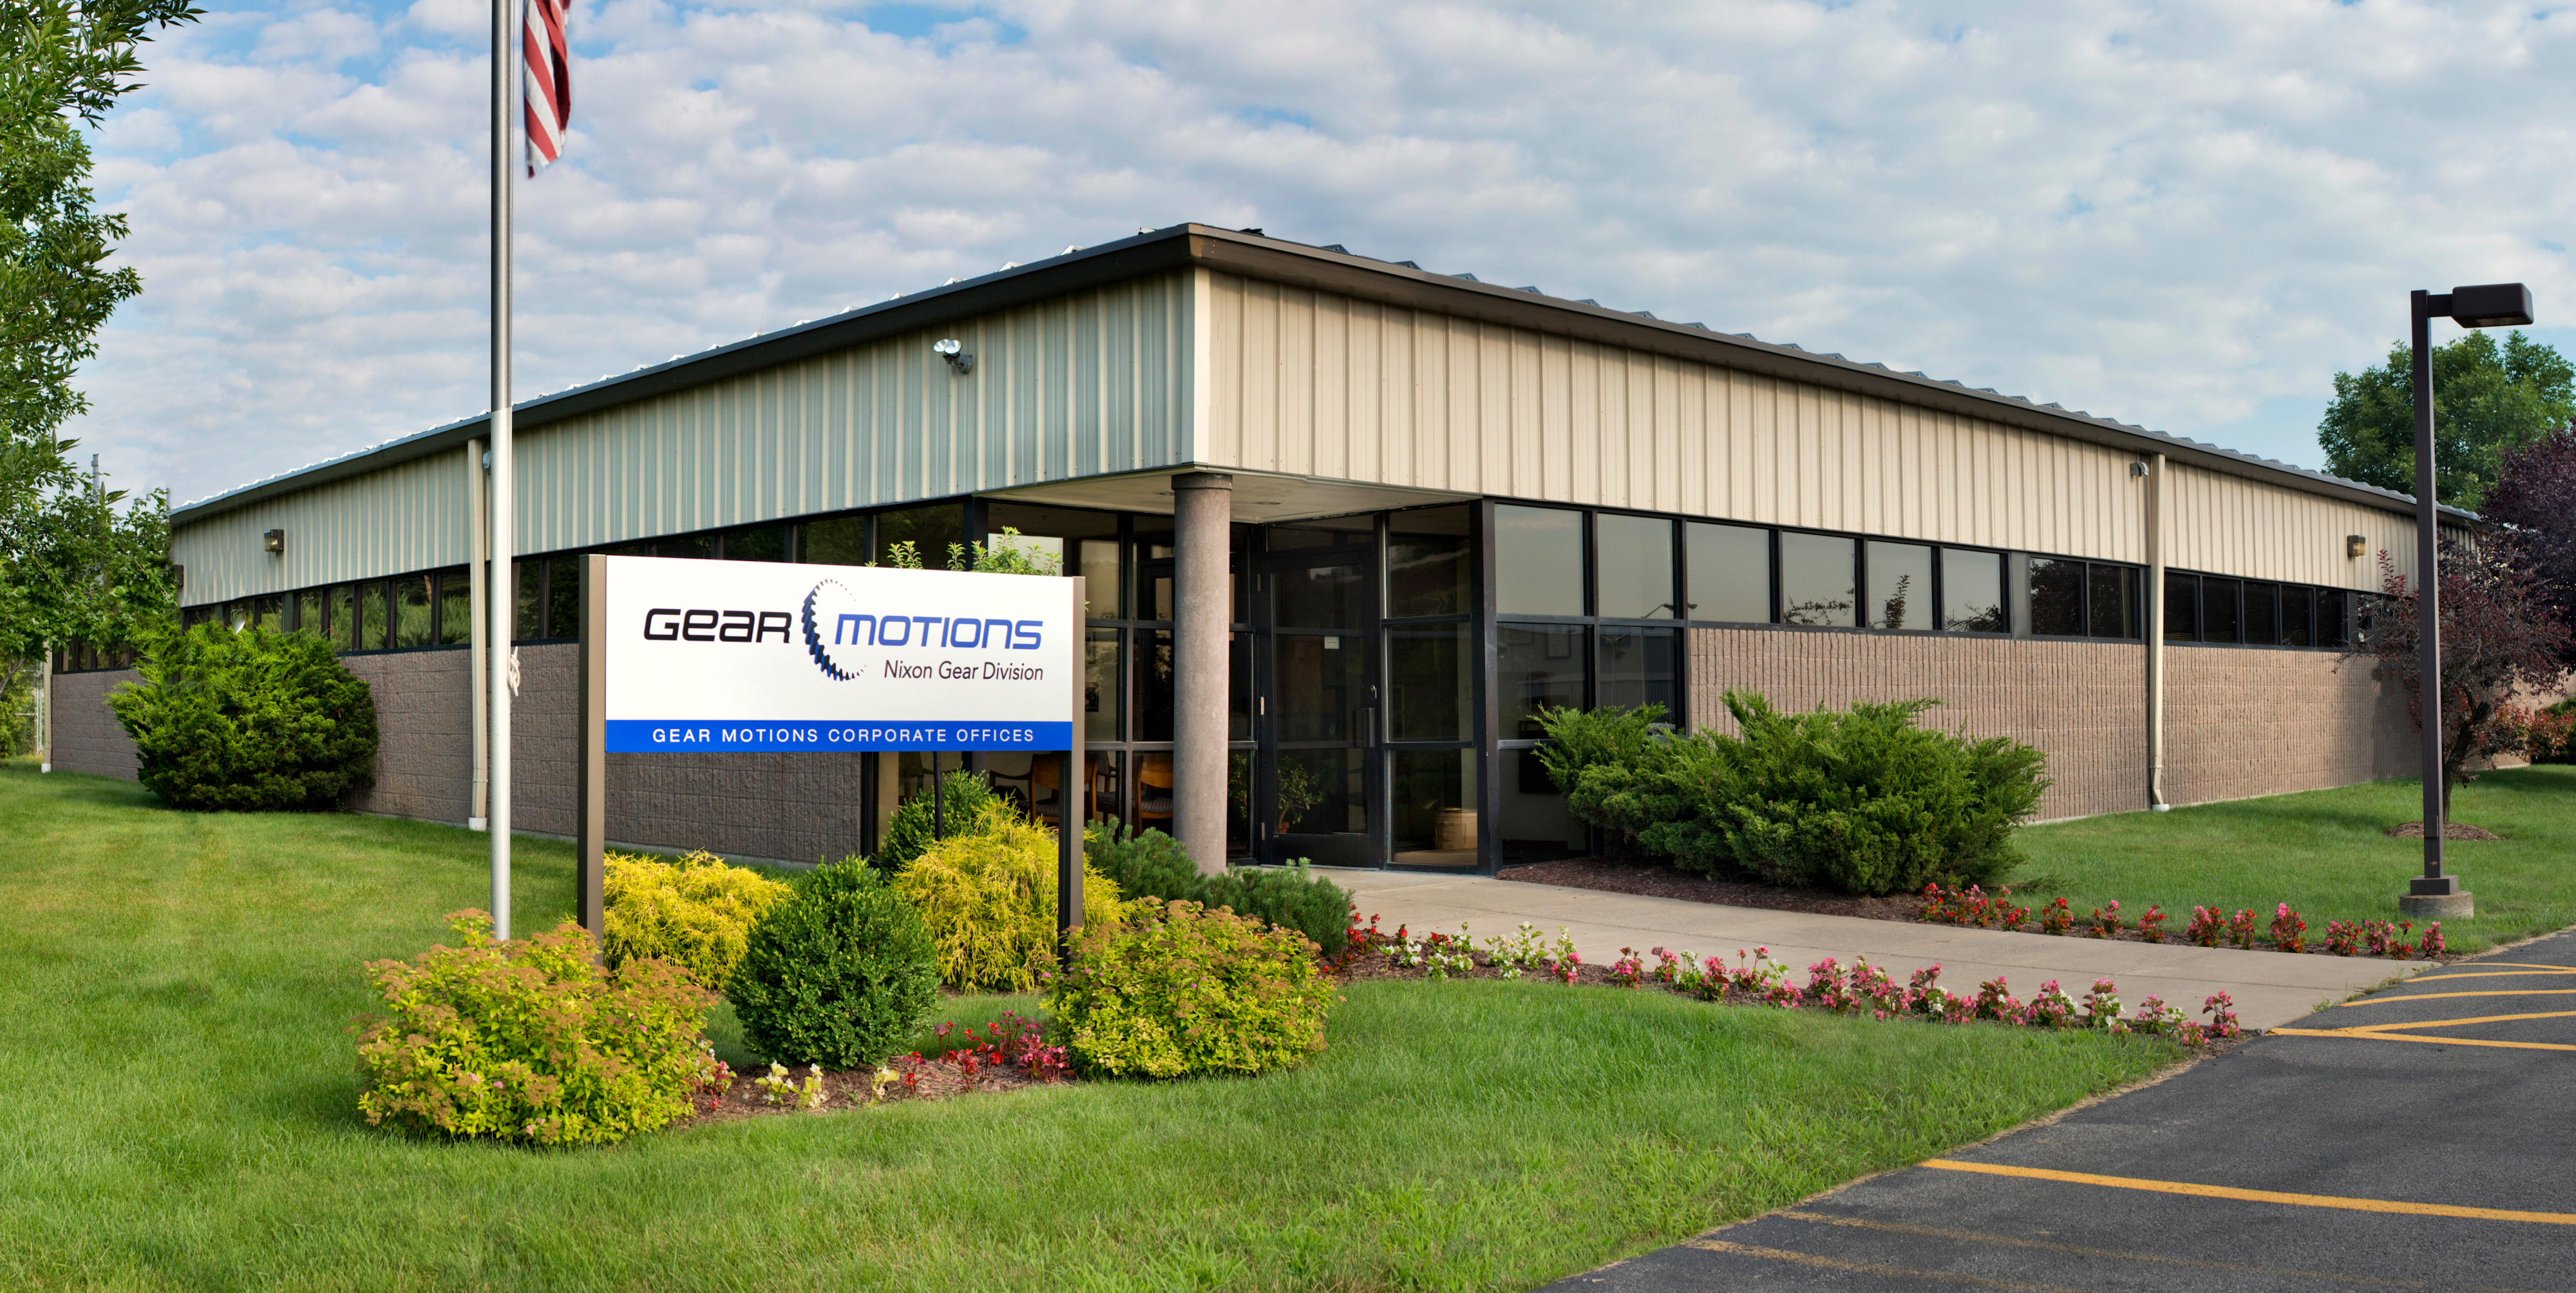 Gear Motons Inc Corporate Offices 1750 Milton Ave Syracuse NY 13209 USA